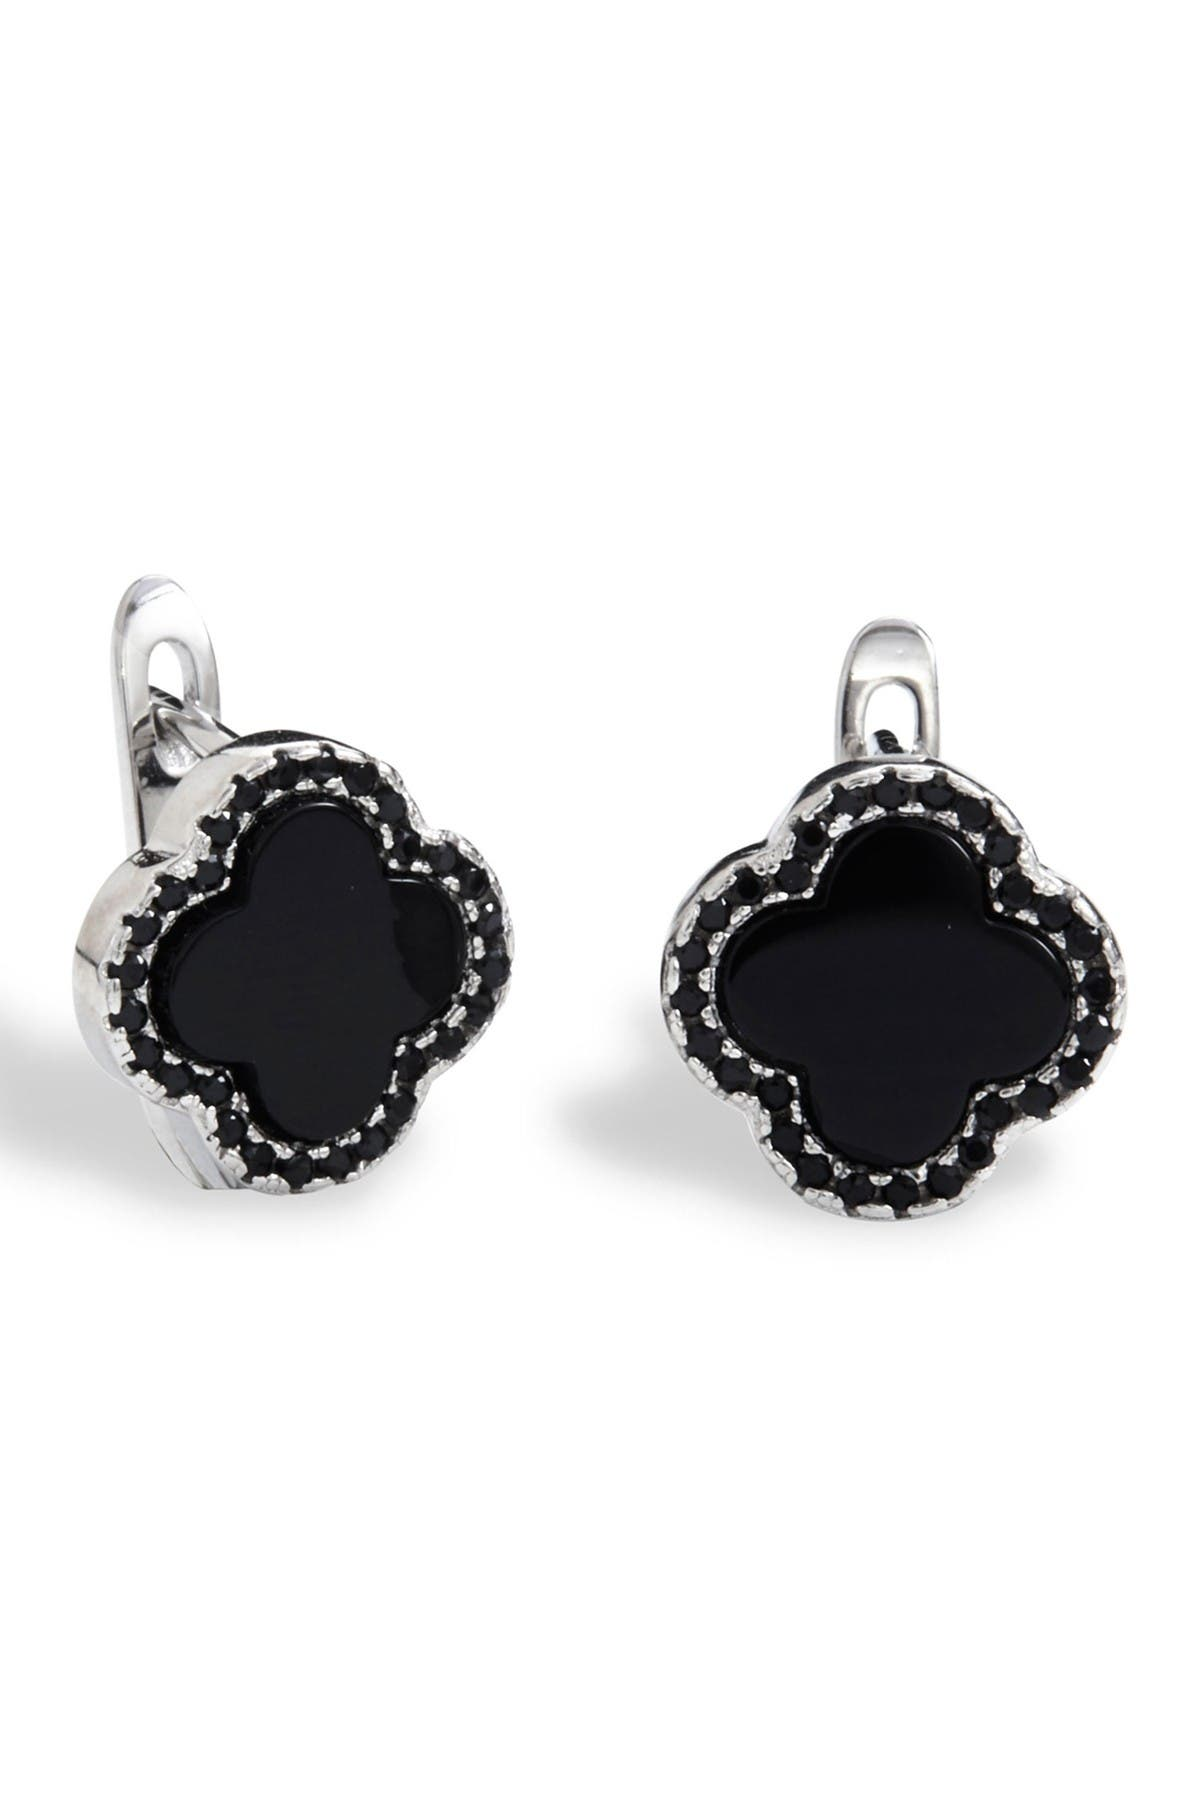 Image of Savvy Cie Sterling Silver Onyx Clover Stud Earrings